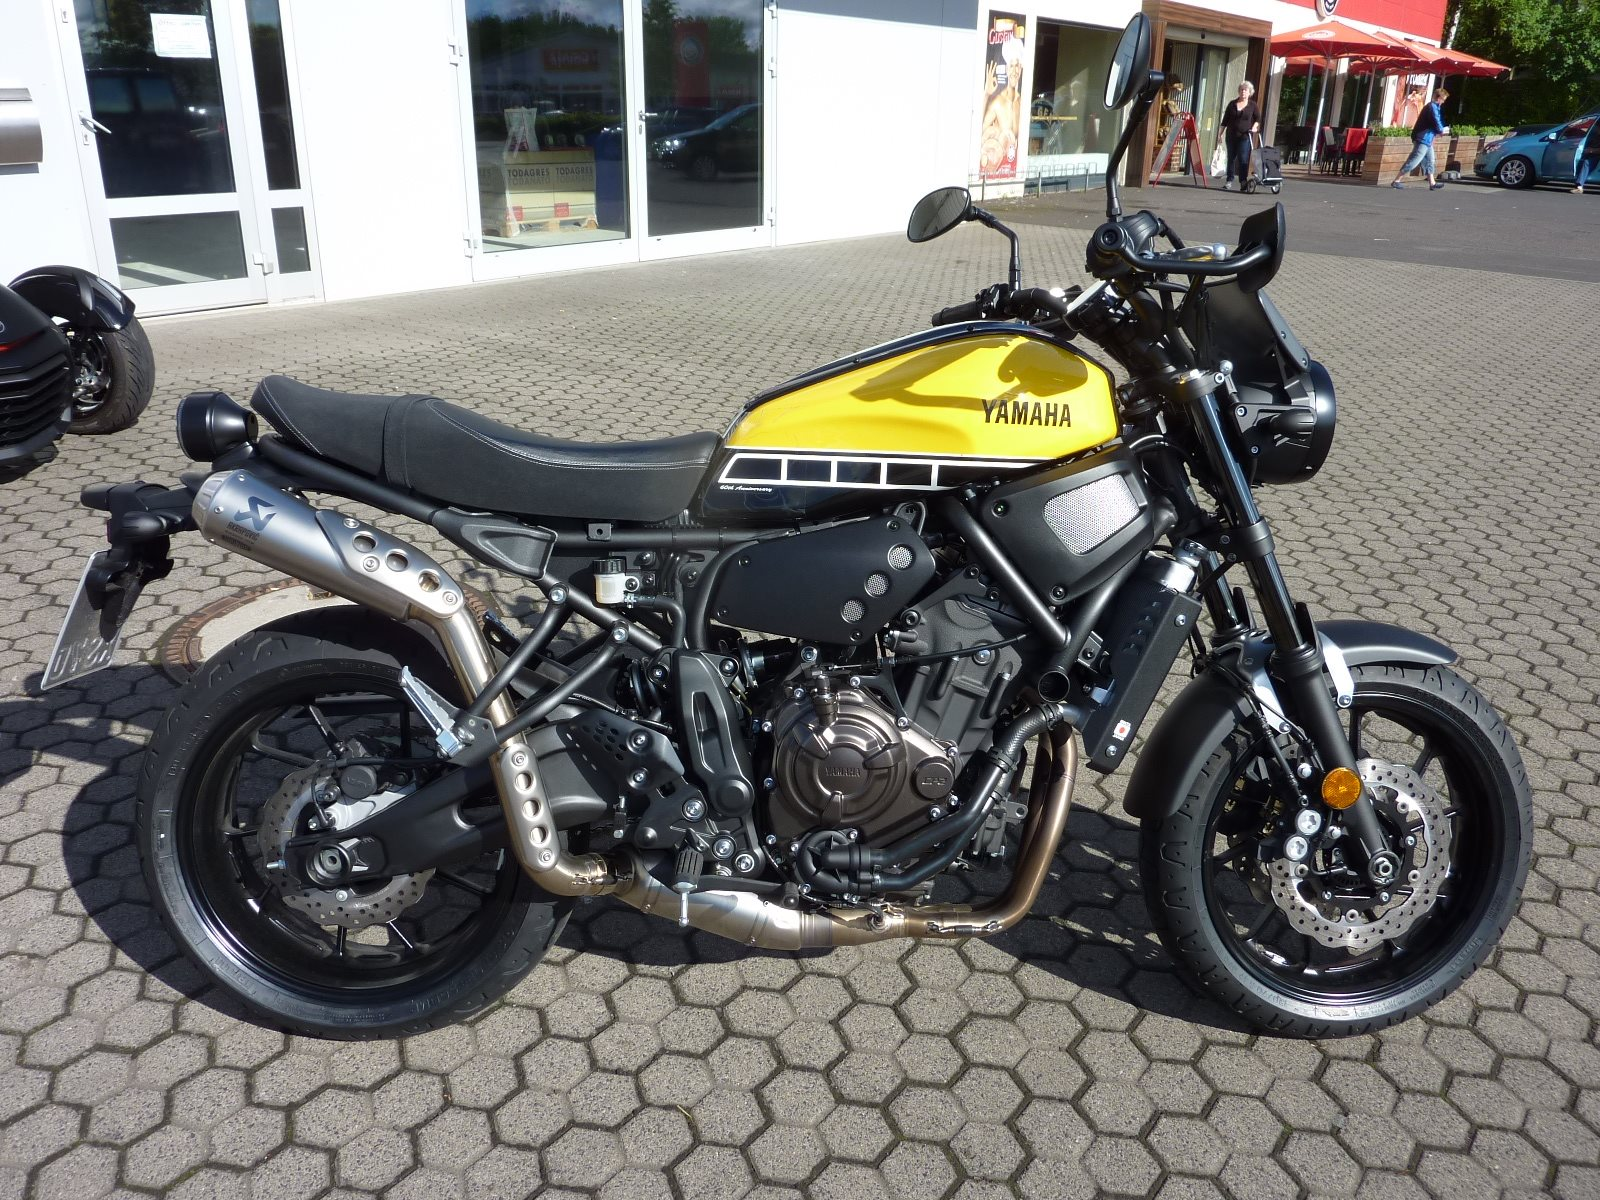 umgebautes motorrad yamaha xsr700 von zweirad center. Black Bedroom Furniture Sets. Home Design Ideas